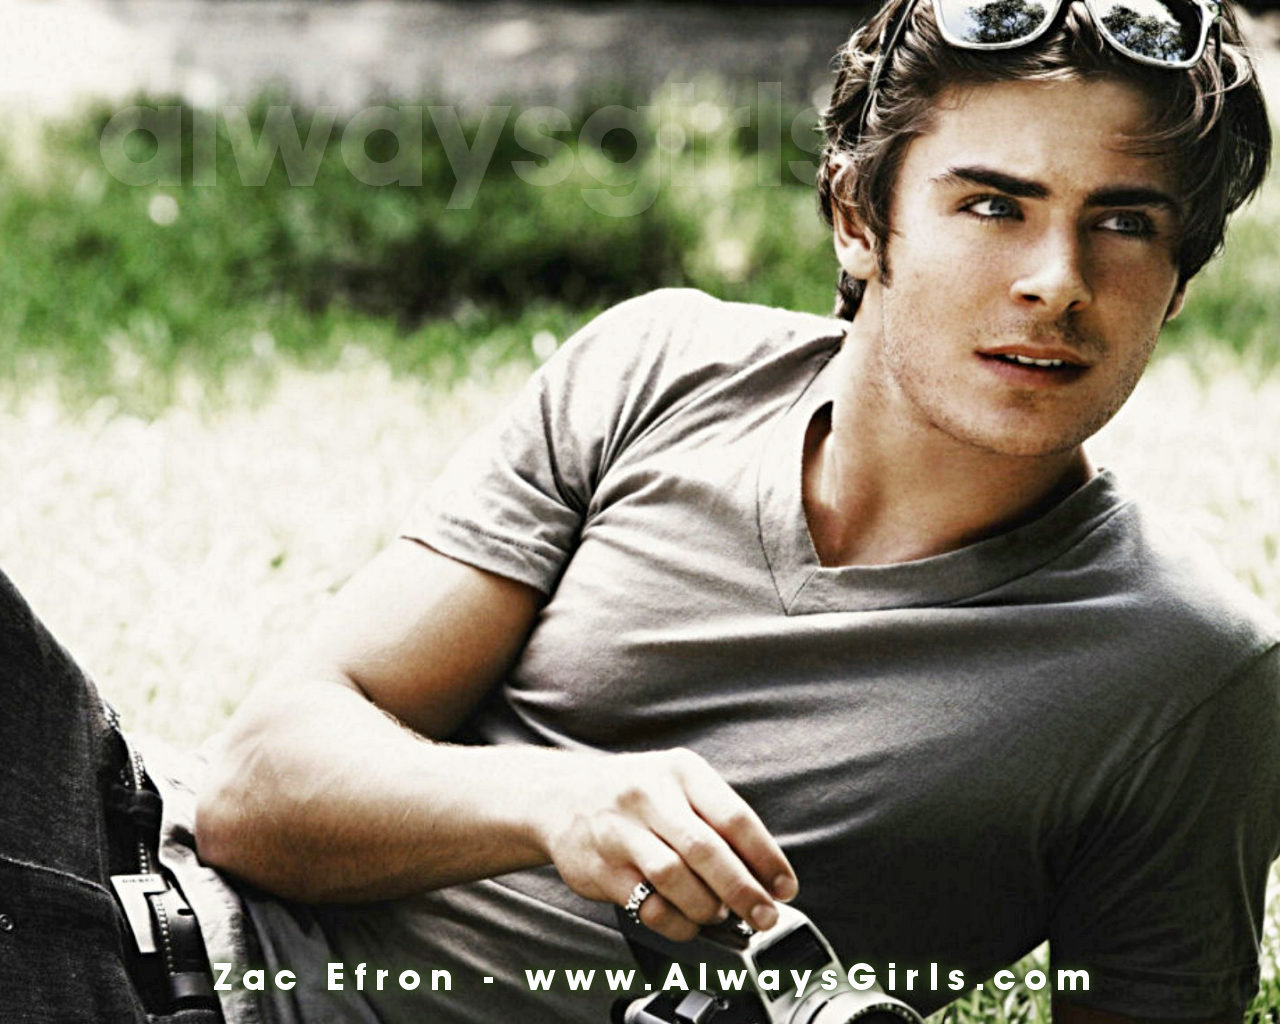 Please check our latest widescreen hd wallpaper below and bring beauty to your desktop. Zac Efron HD Wallpapers